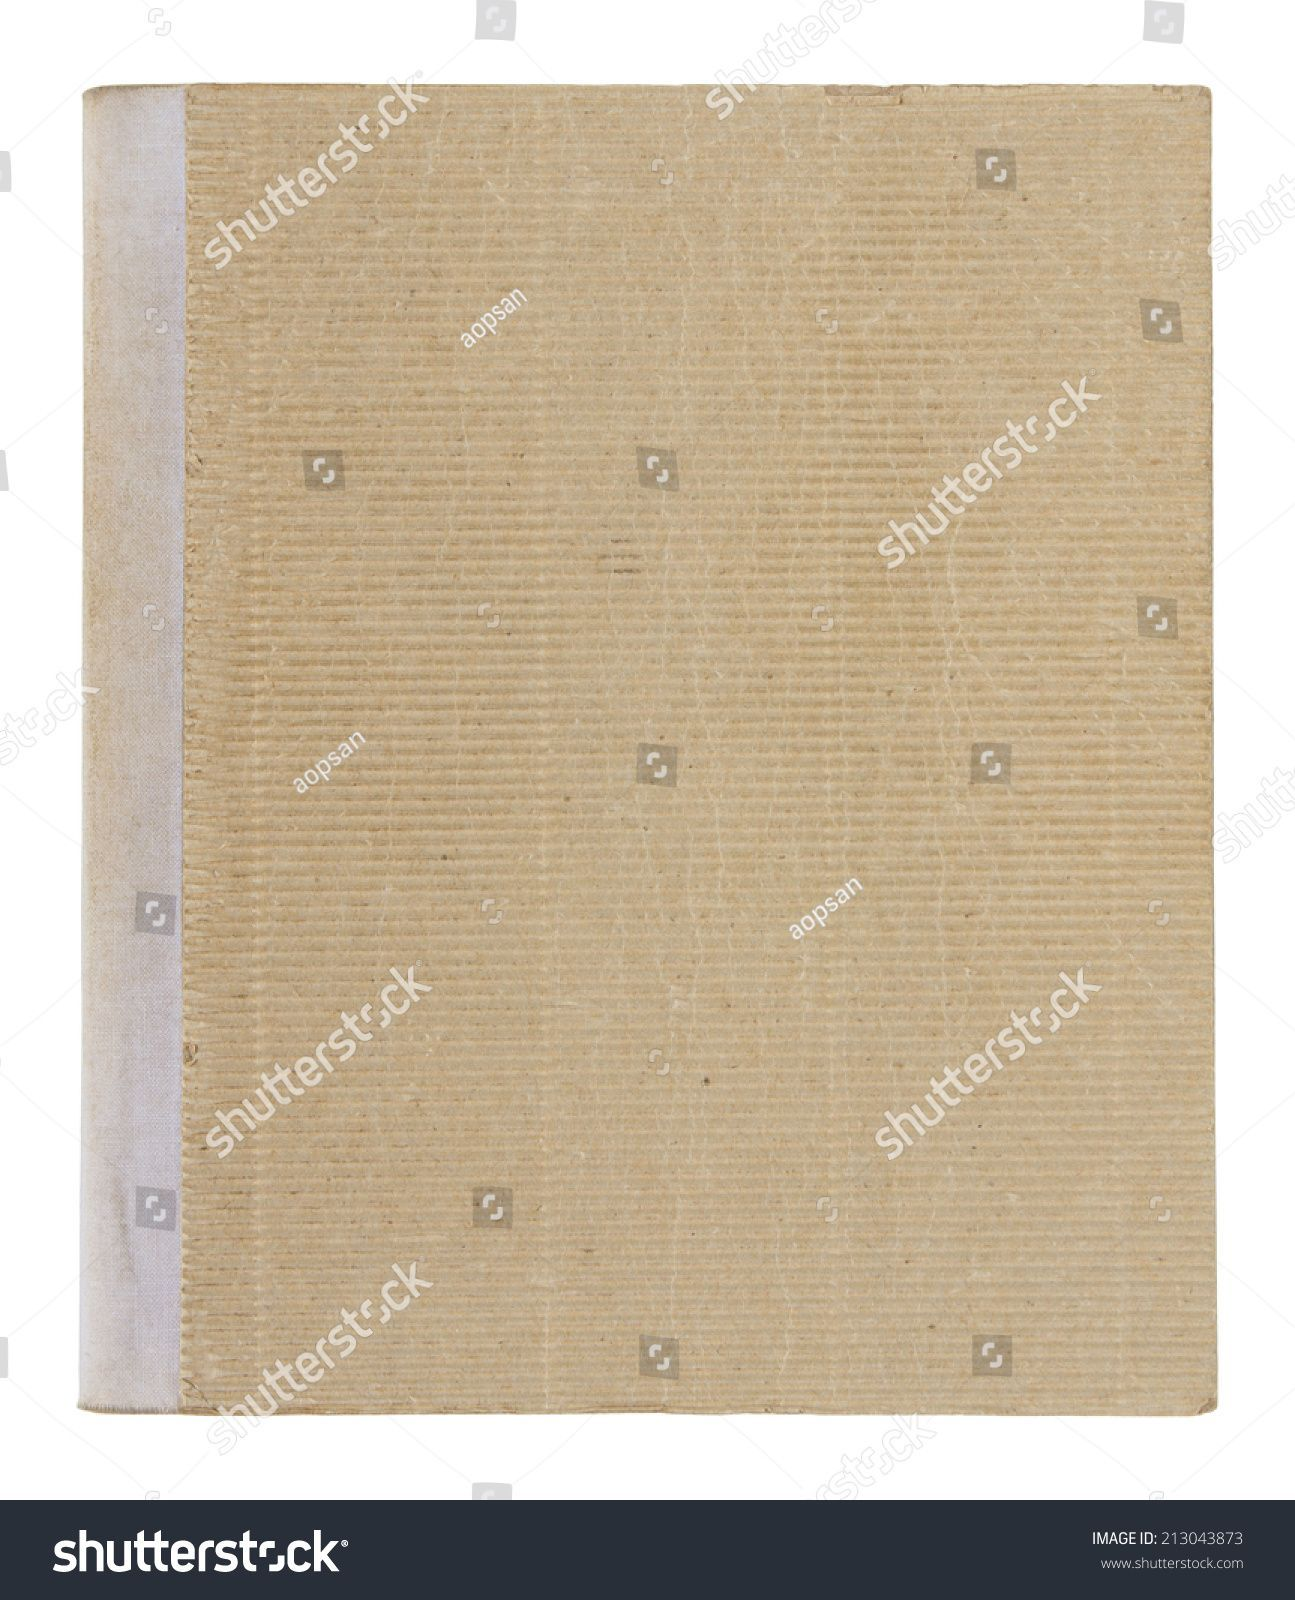 old book cover isolated on white background with clipping